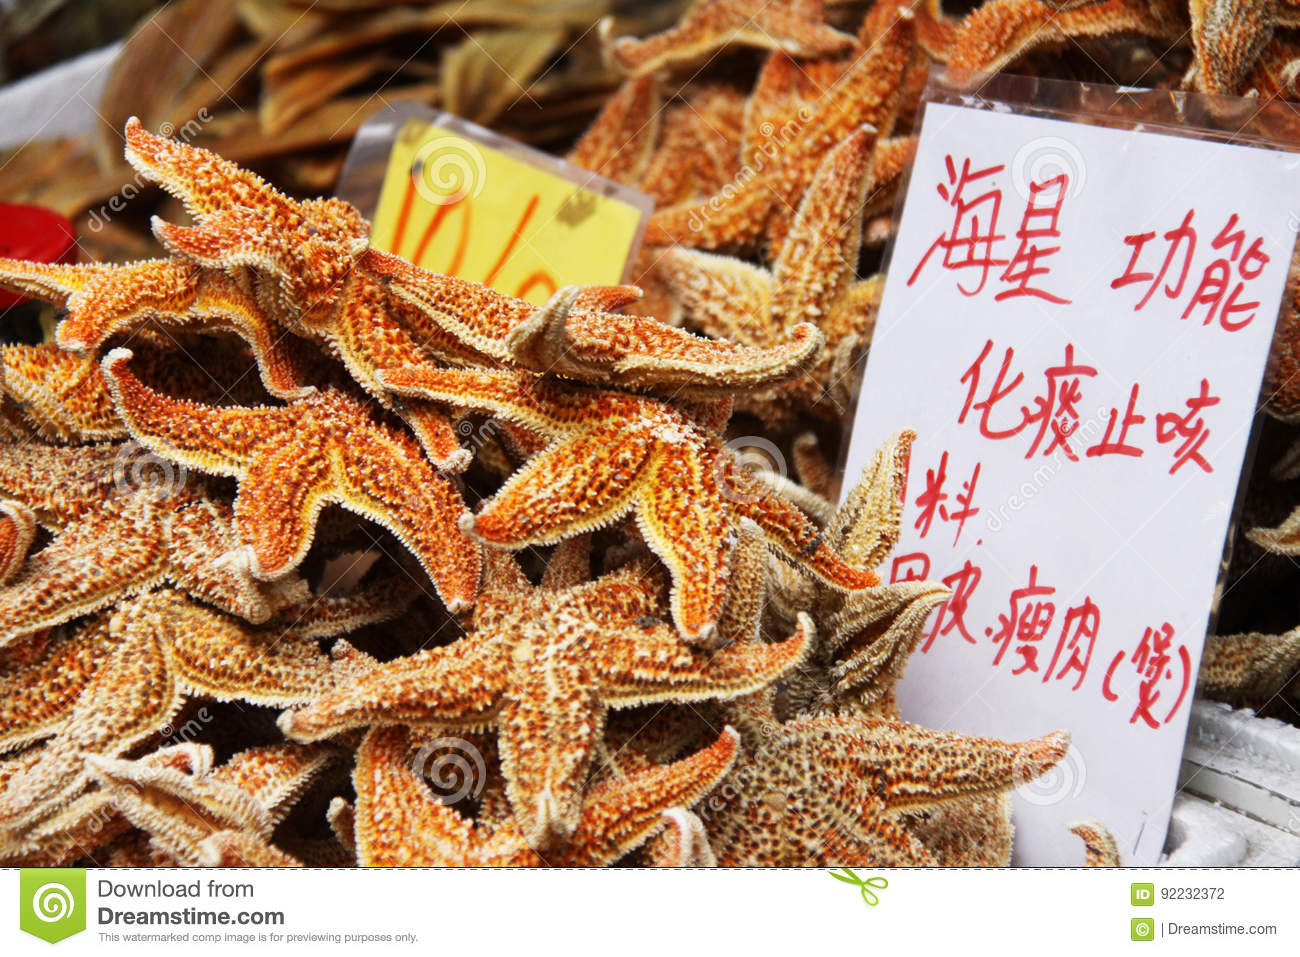 Starfish for sale stock photo. Image of yellow, dried ...